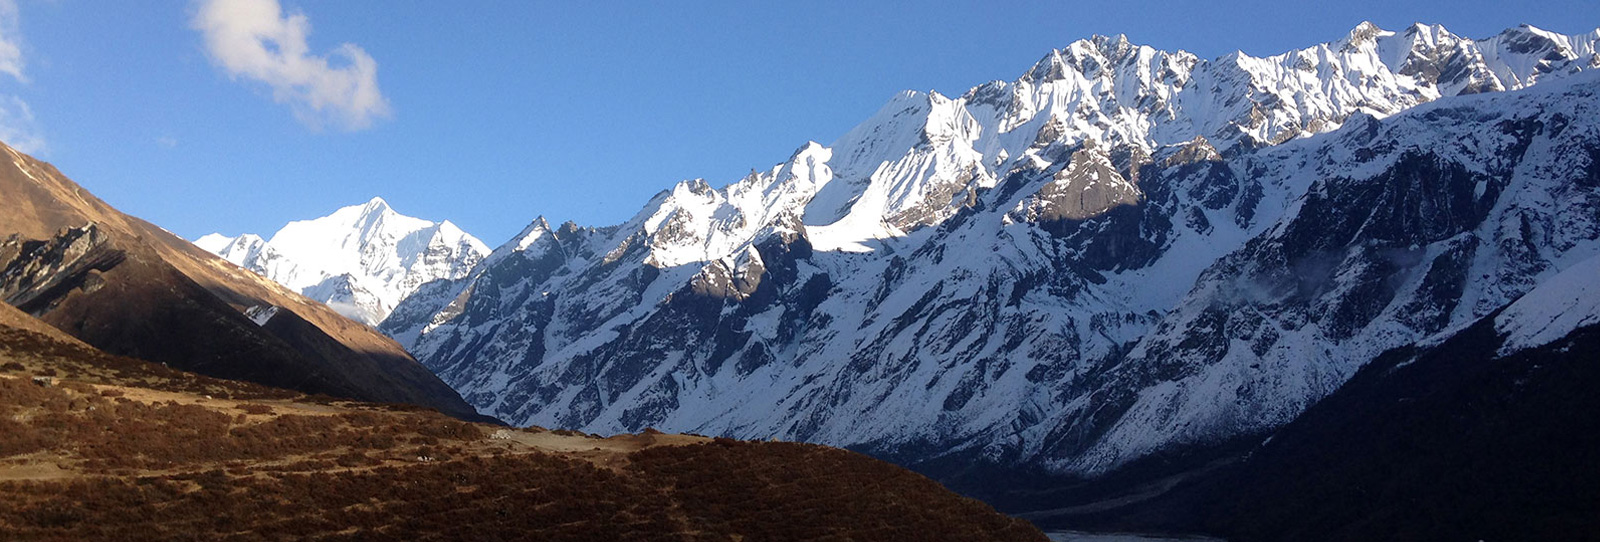 Langtang Valley Heli Day Tour